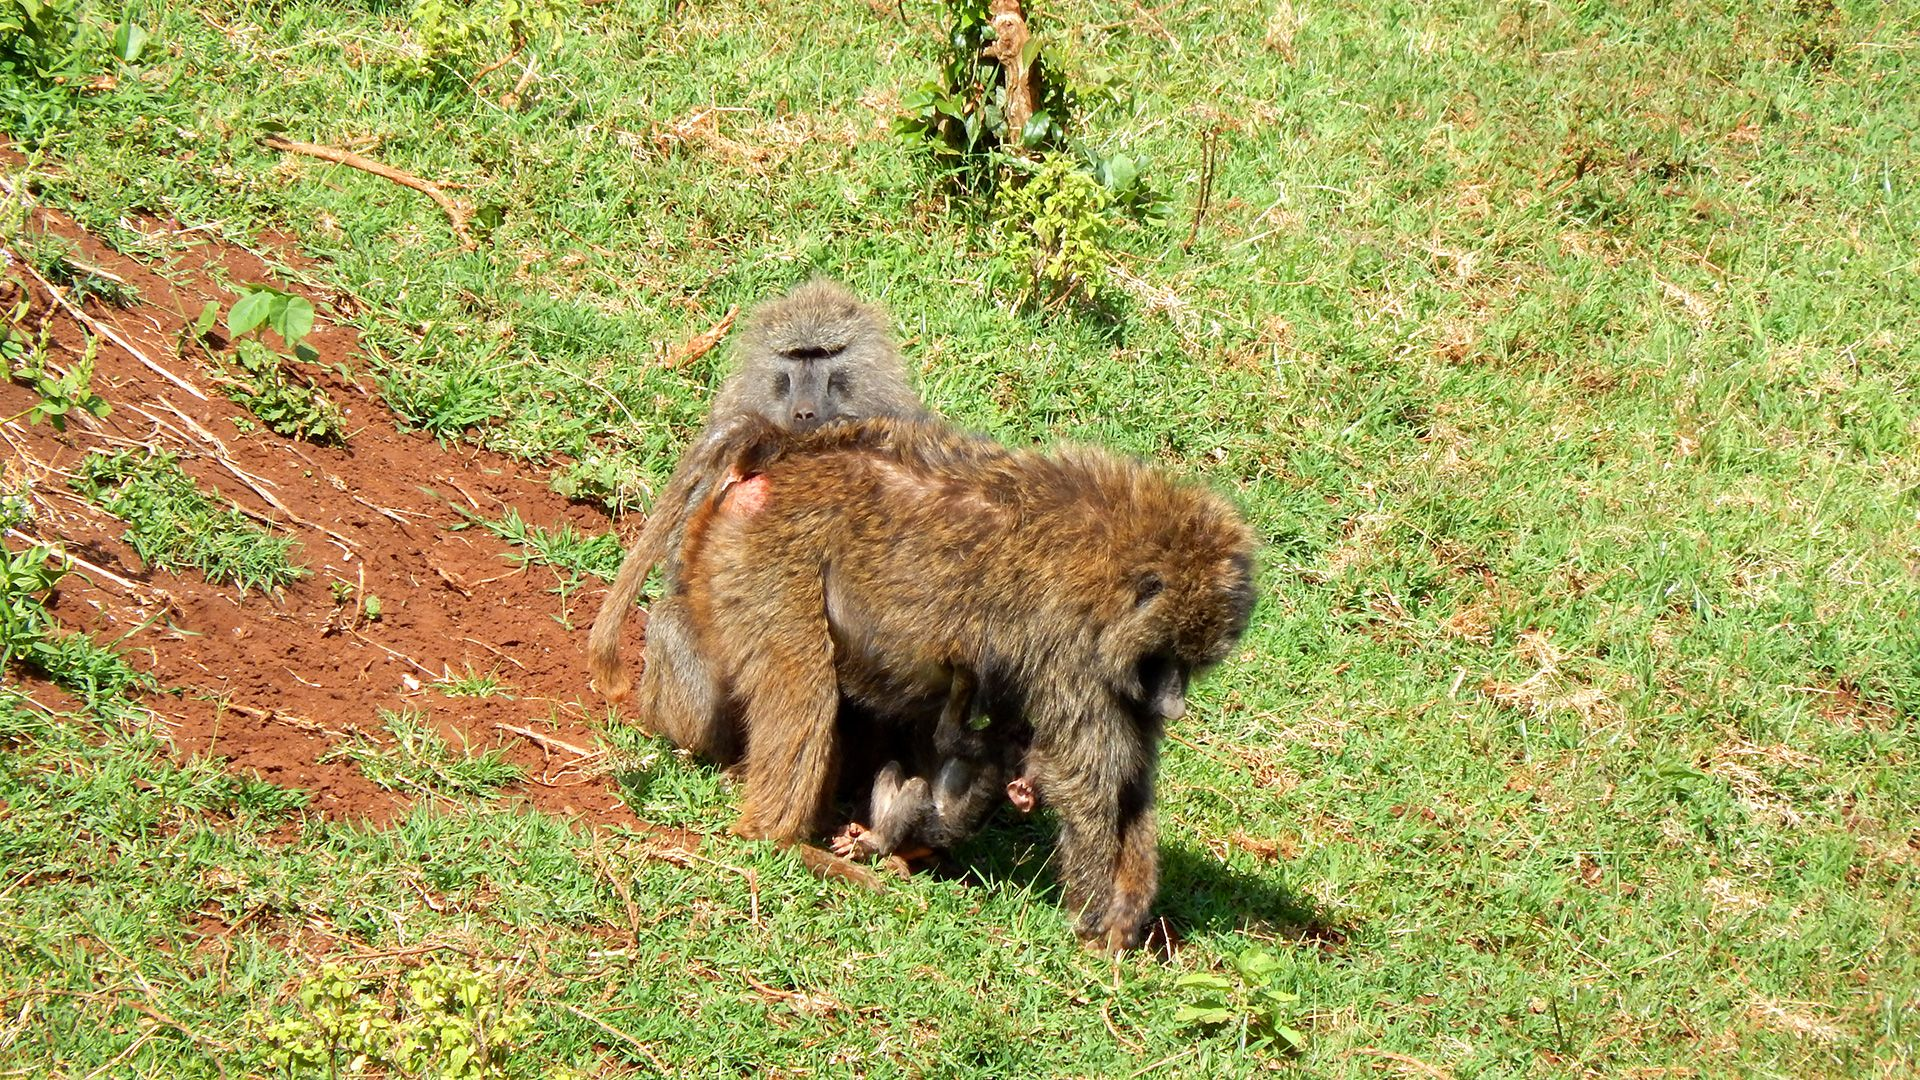 Download A Safari Wallpaper Of A Baboon Family Absolutely Free